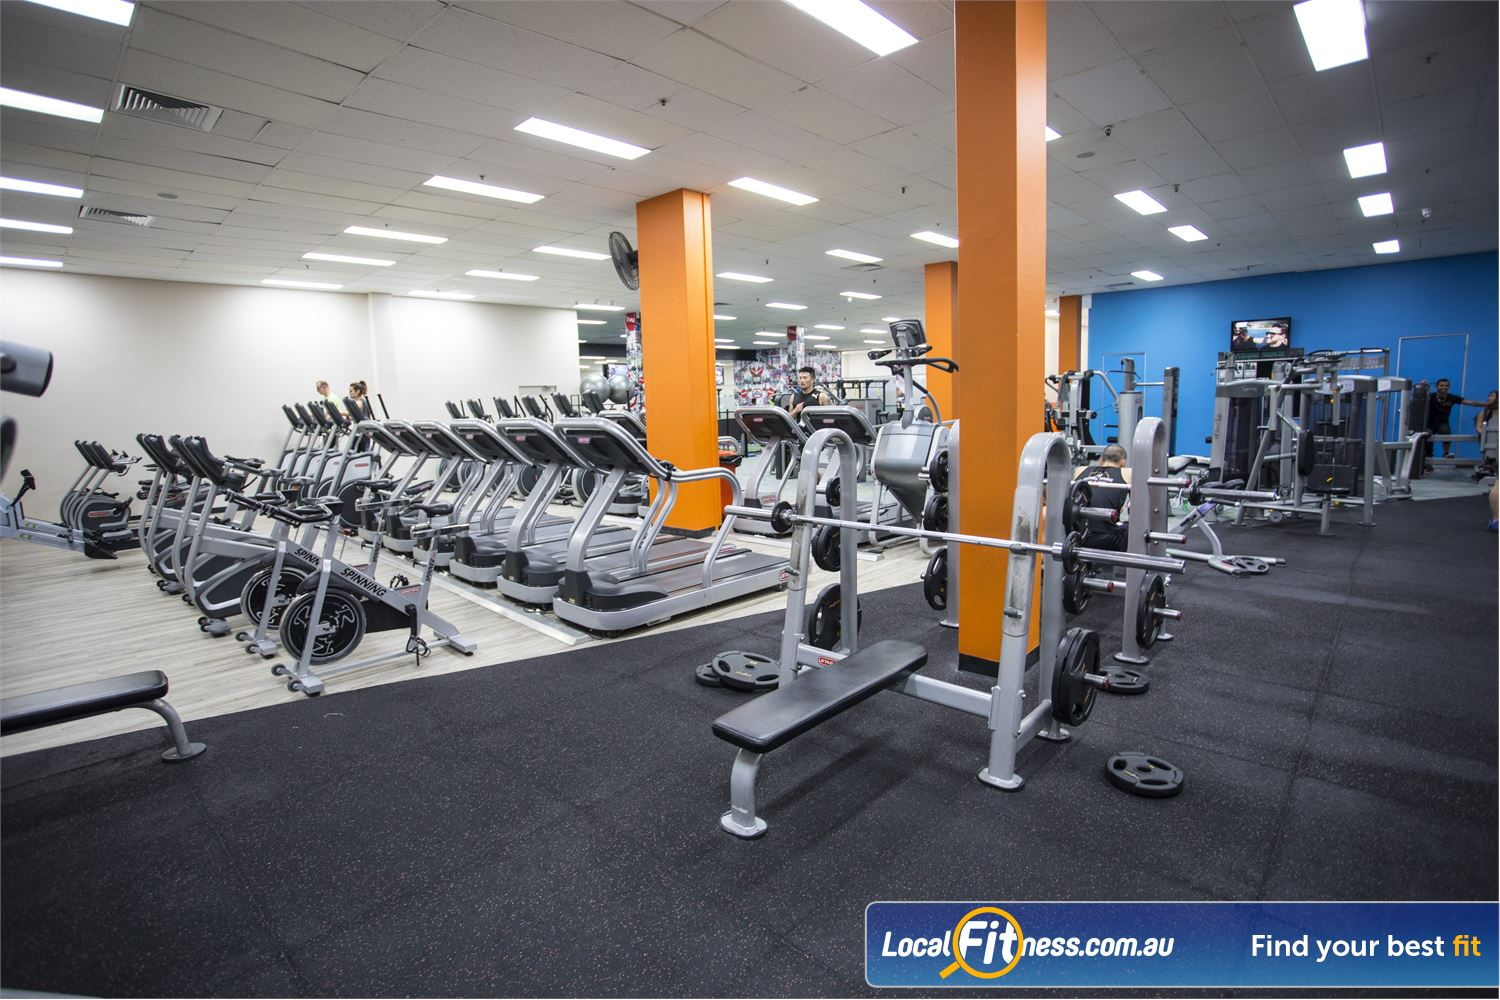 Fit n Fast Sydney Our Sydney gym provides free-weights, resistance weights and all you need to get a full body workout.